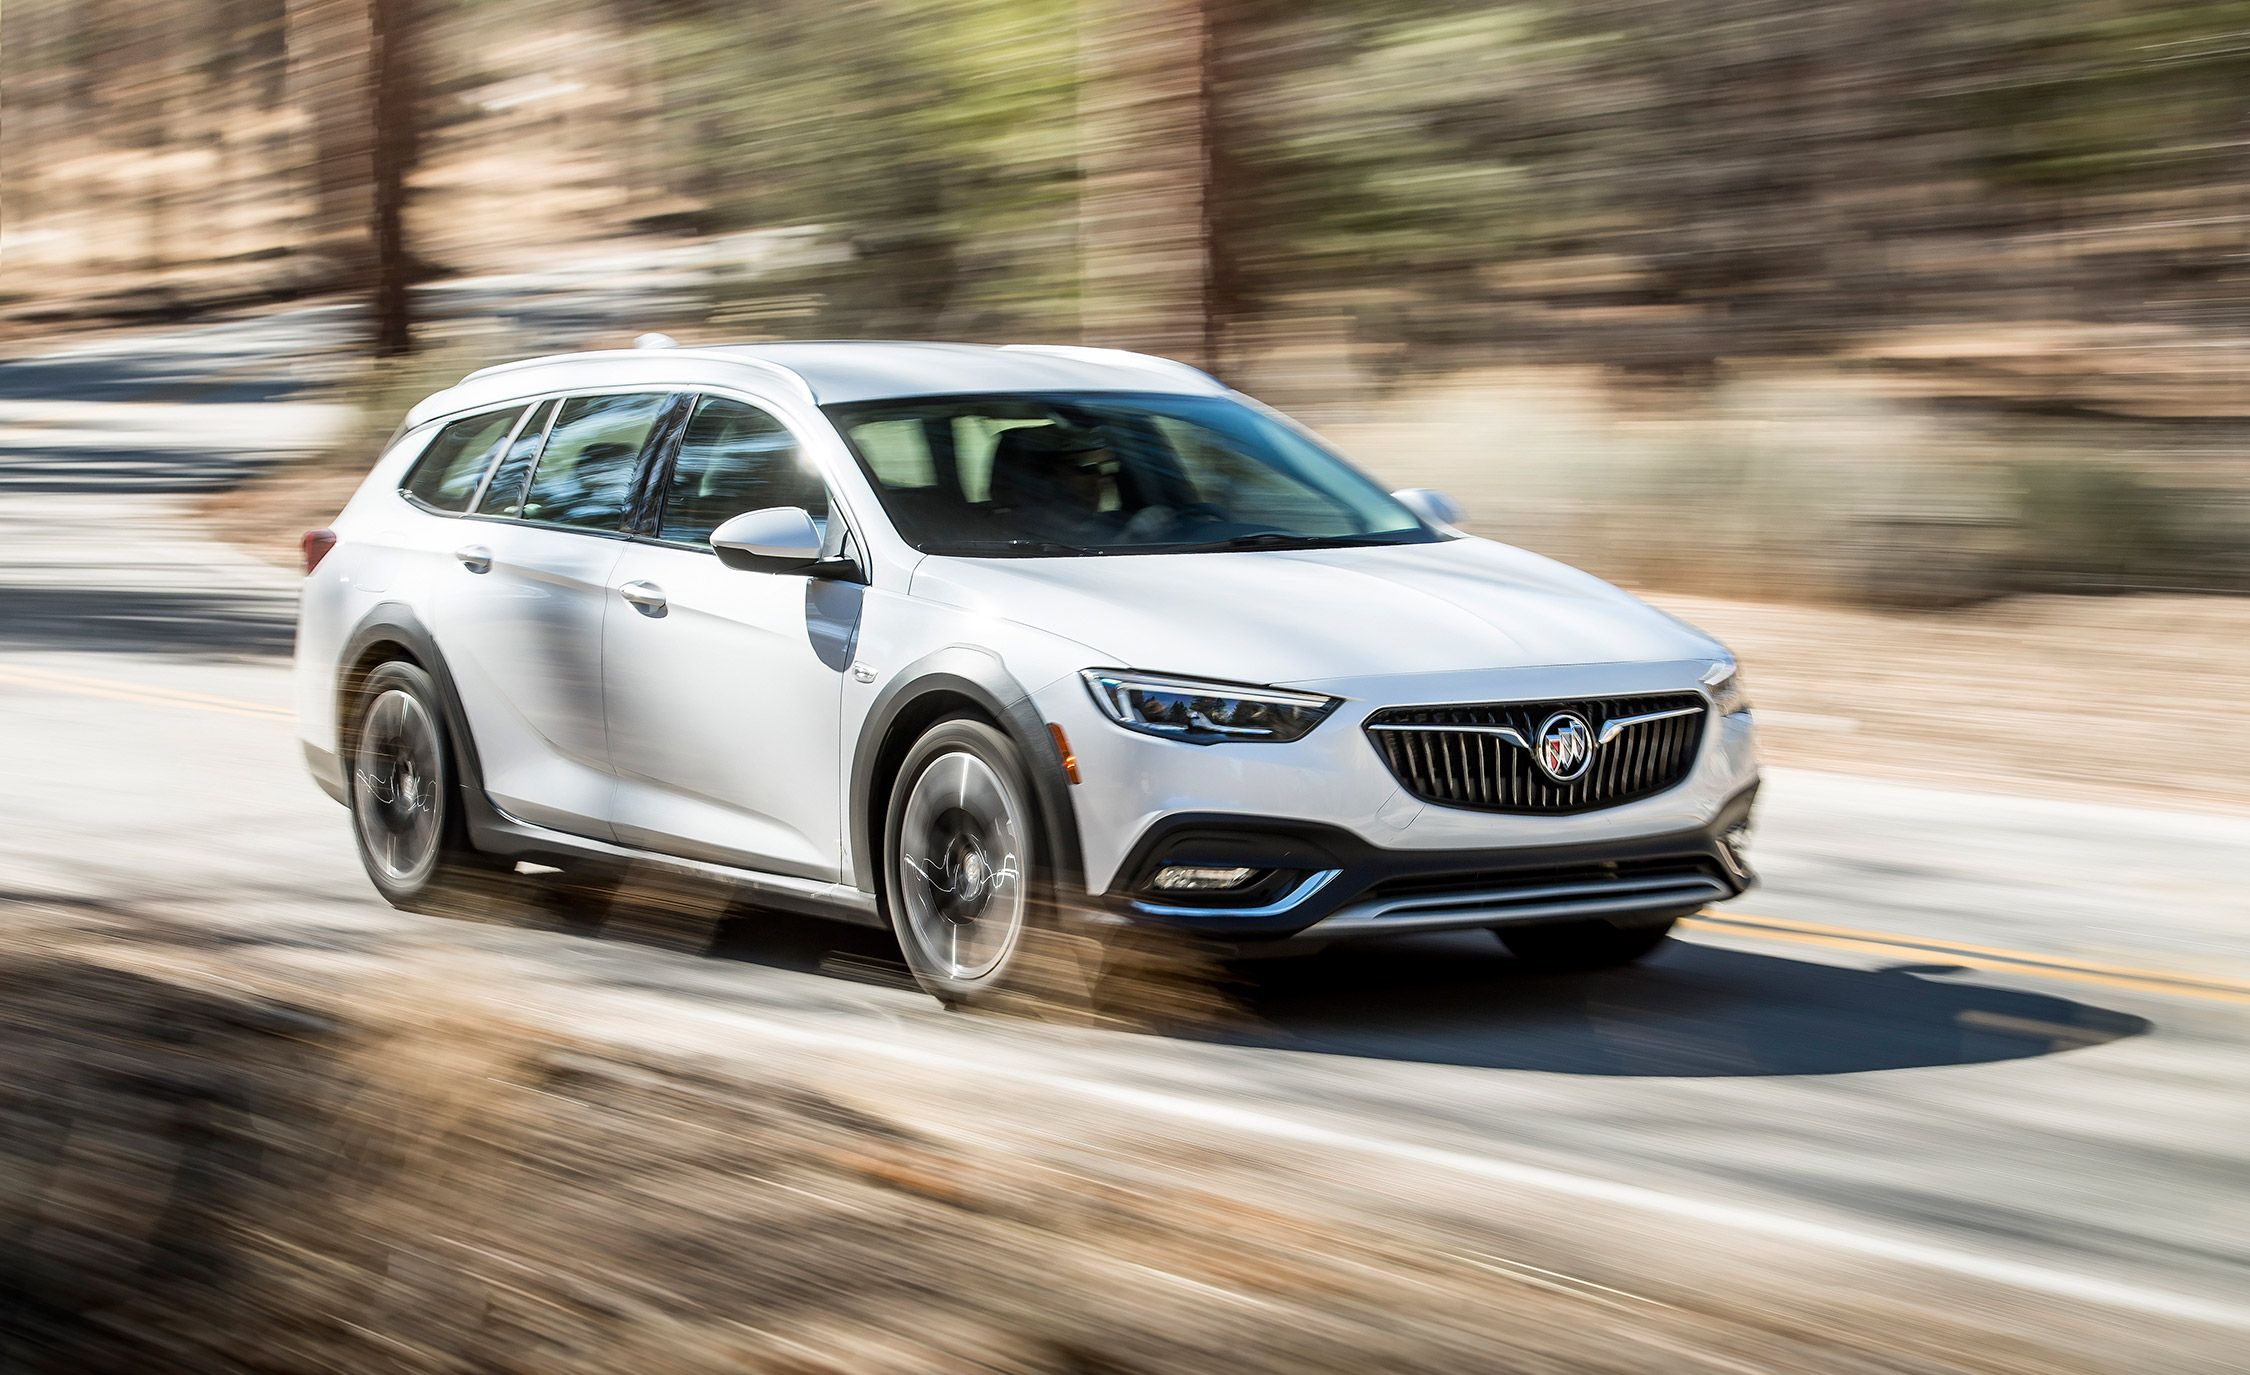 2018 Buick Regal Tourx Test | Review | Car And Driver New 2021 Buick Regal Tourx Review, Specs, 0-60